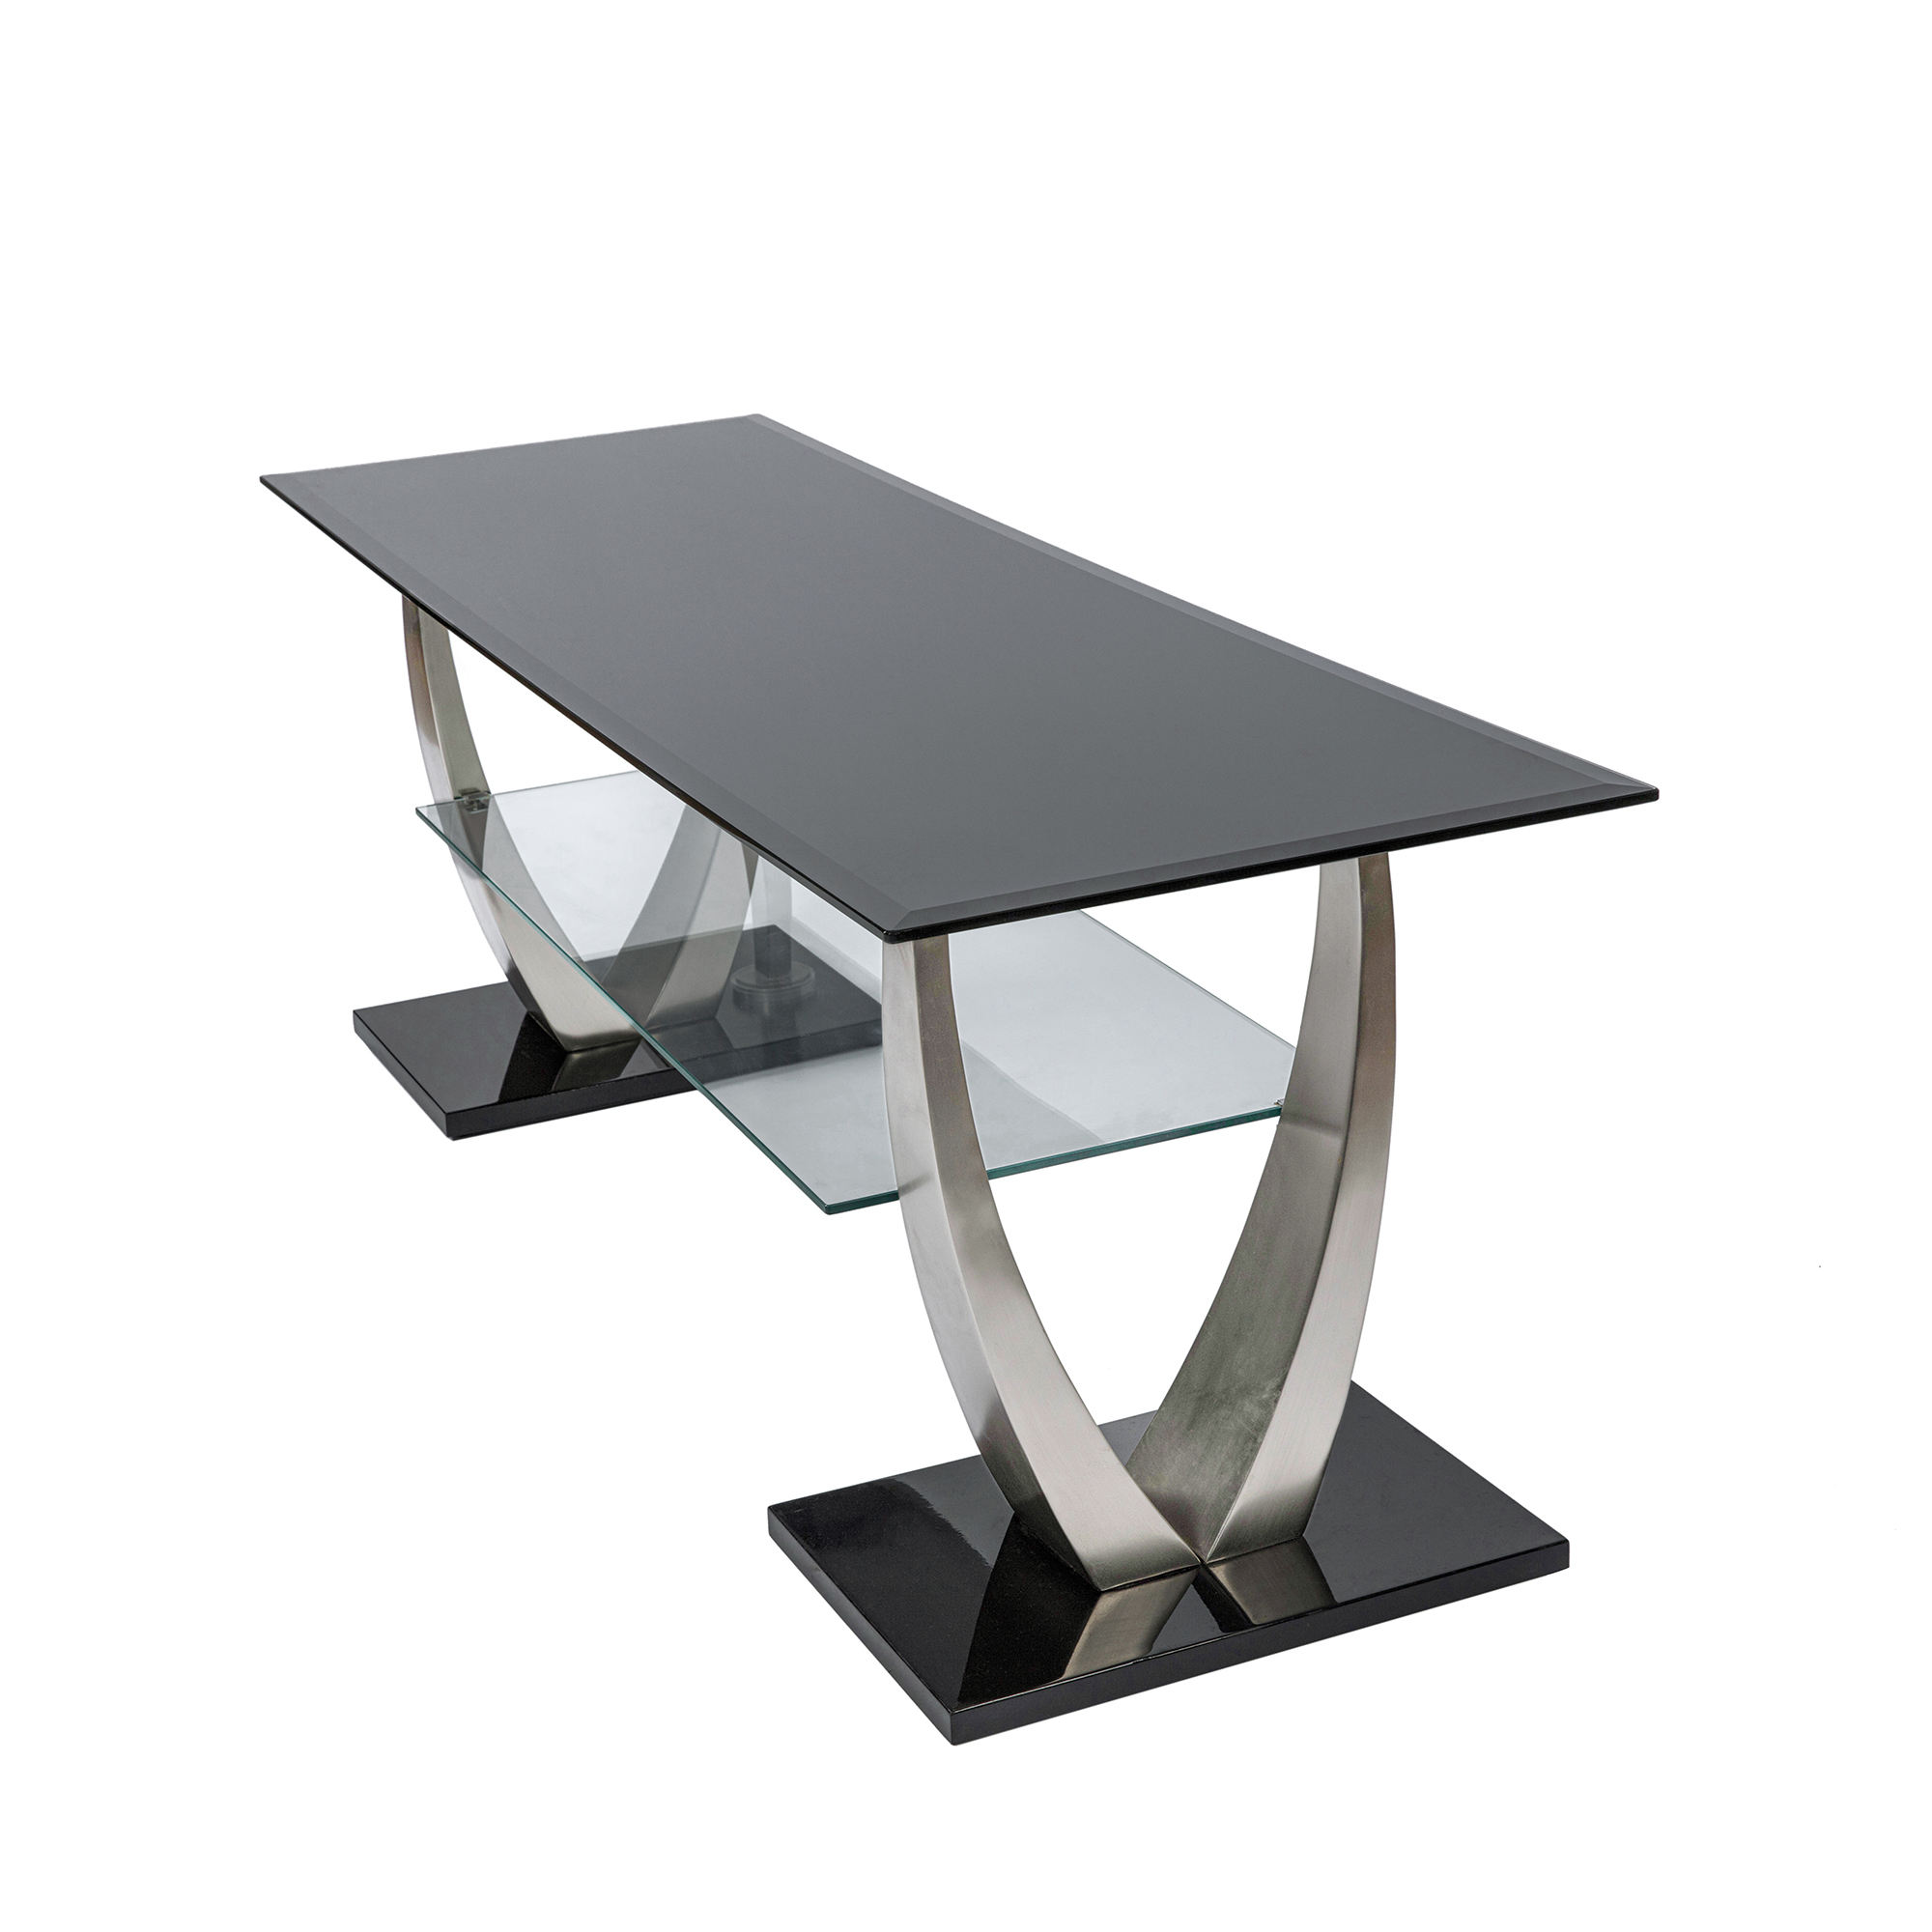 Modern Classic Simple Design Home Living Room Stylish Furniture Black Glass Top Steel Frame Tv Table Stands